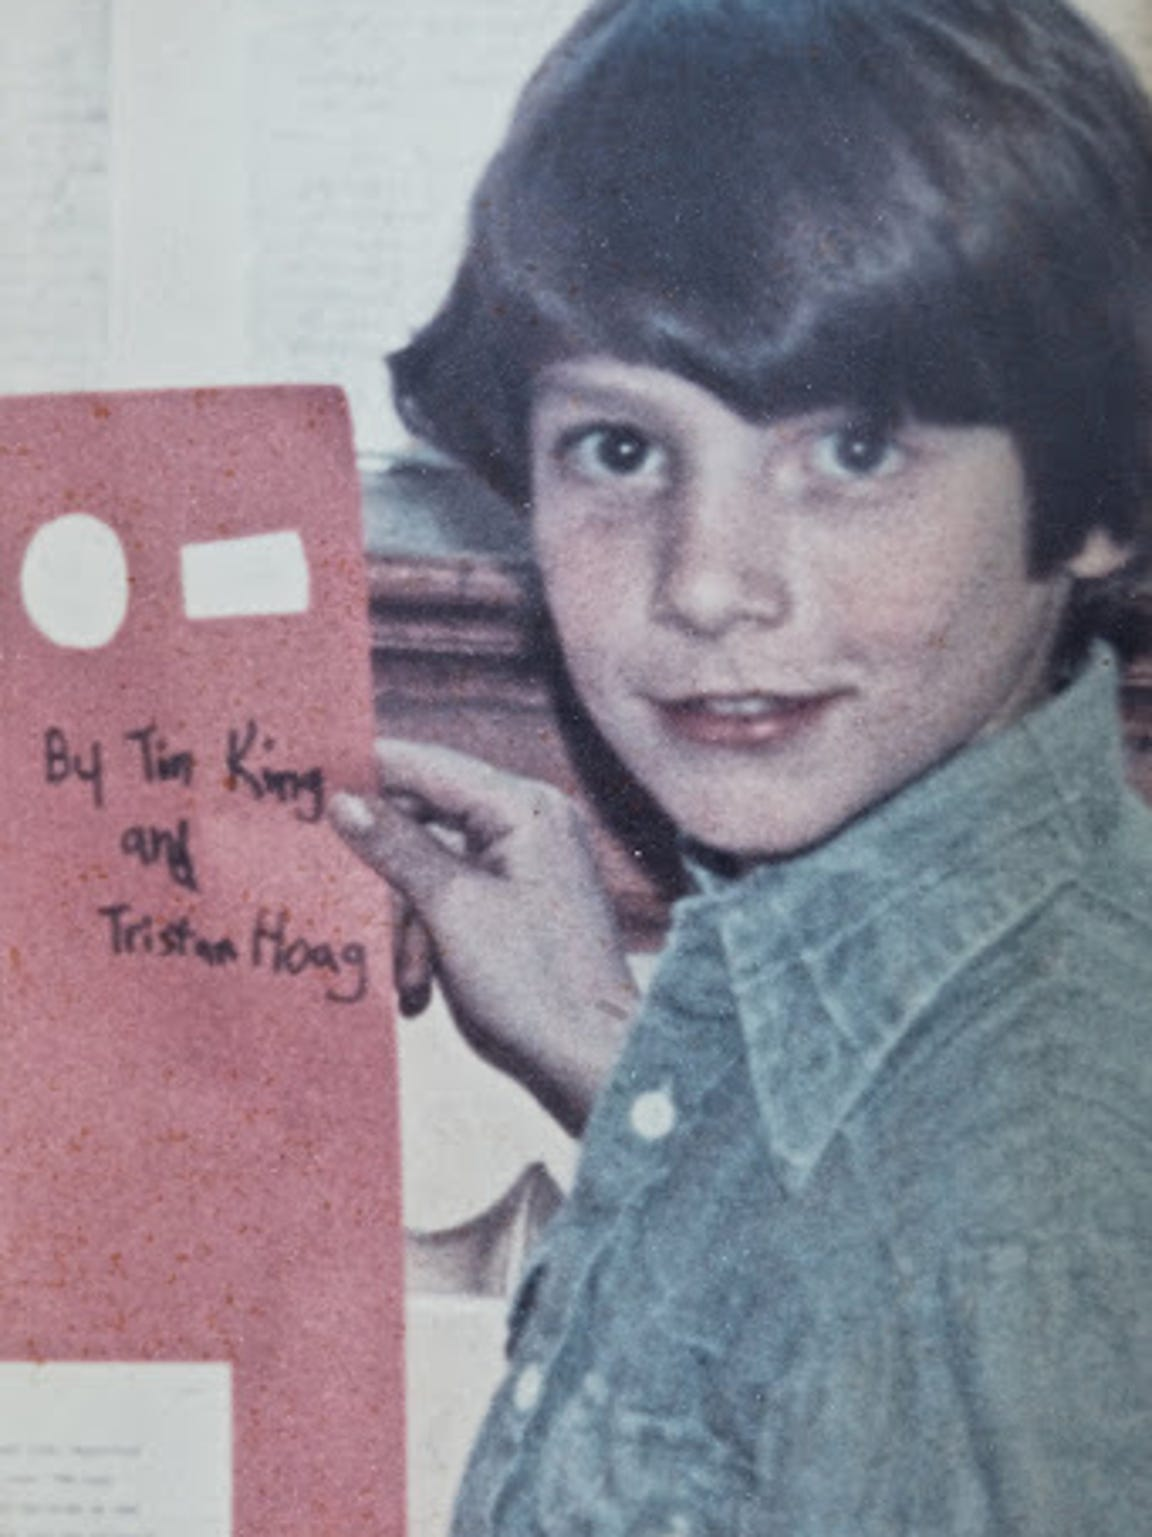 A photo taken of Tim King the day he was abducted.